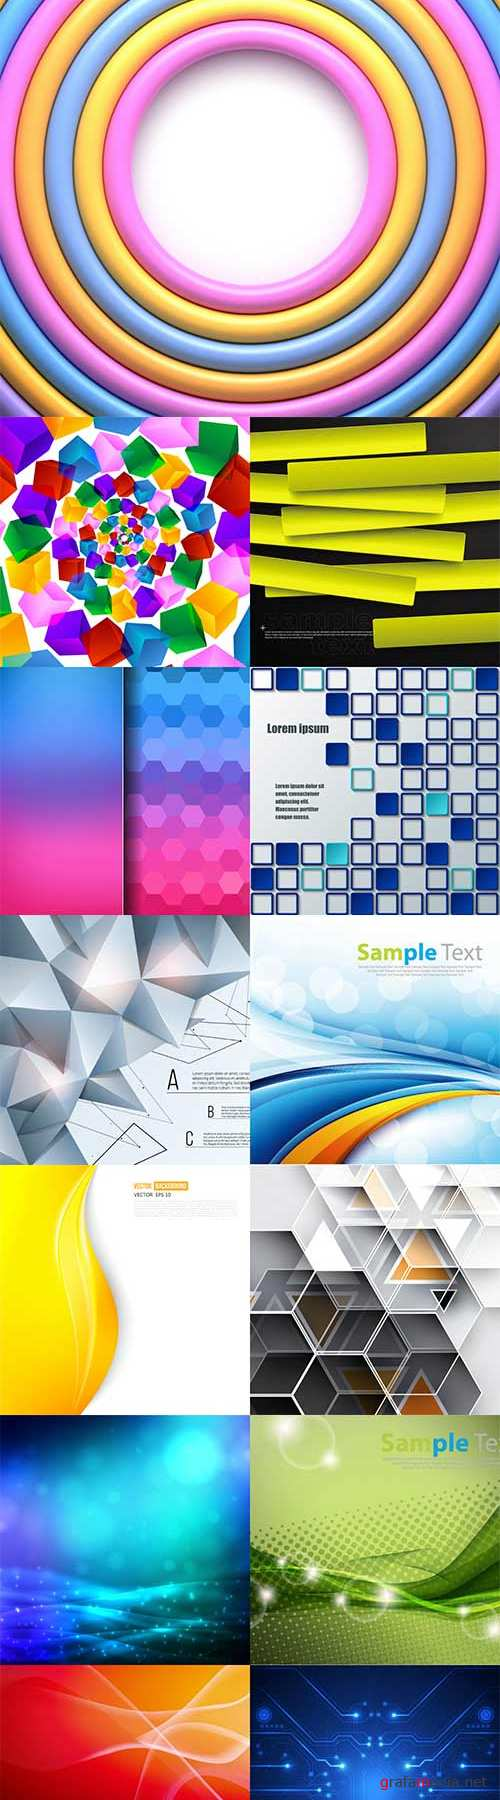 Bright colorful abstract backgrounds vector -52